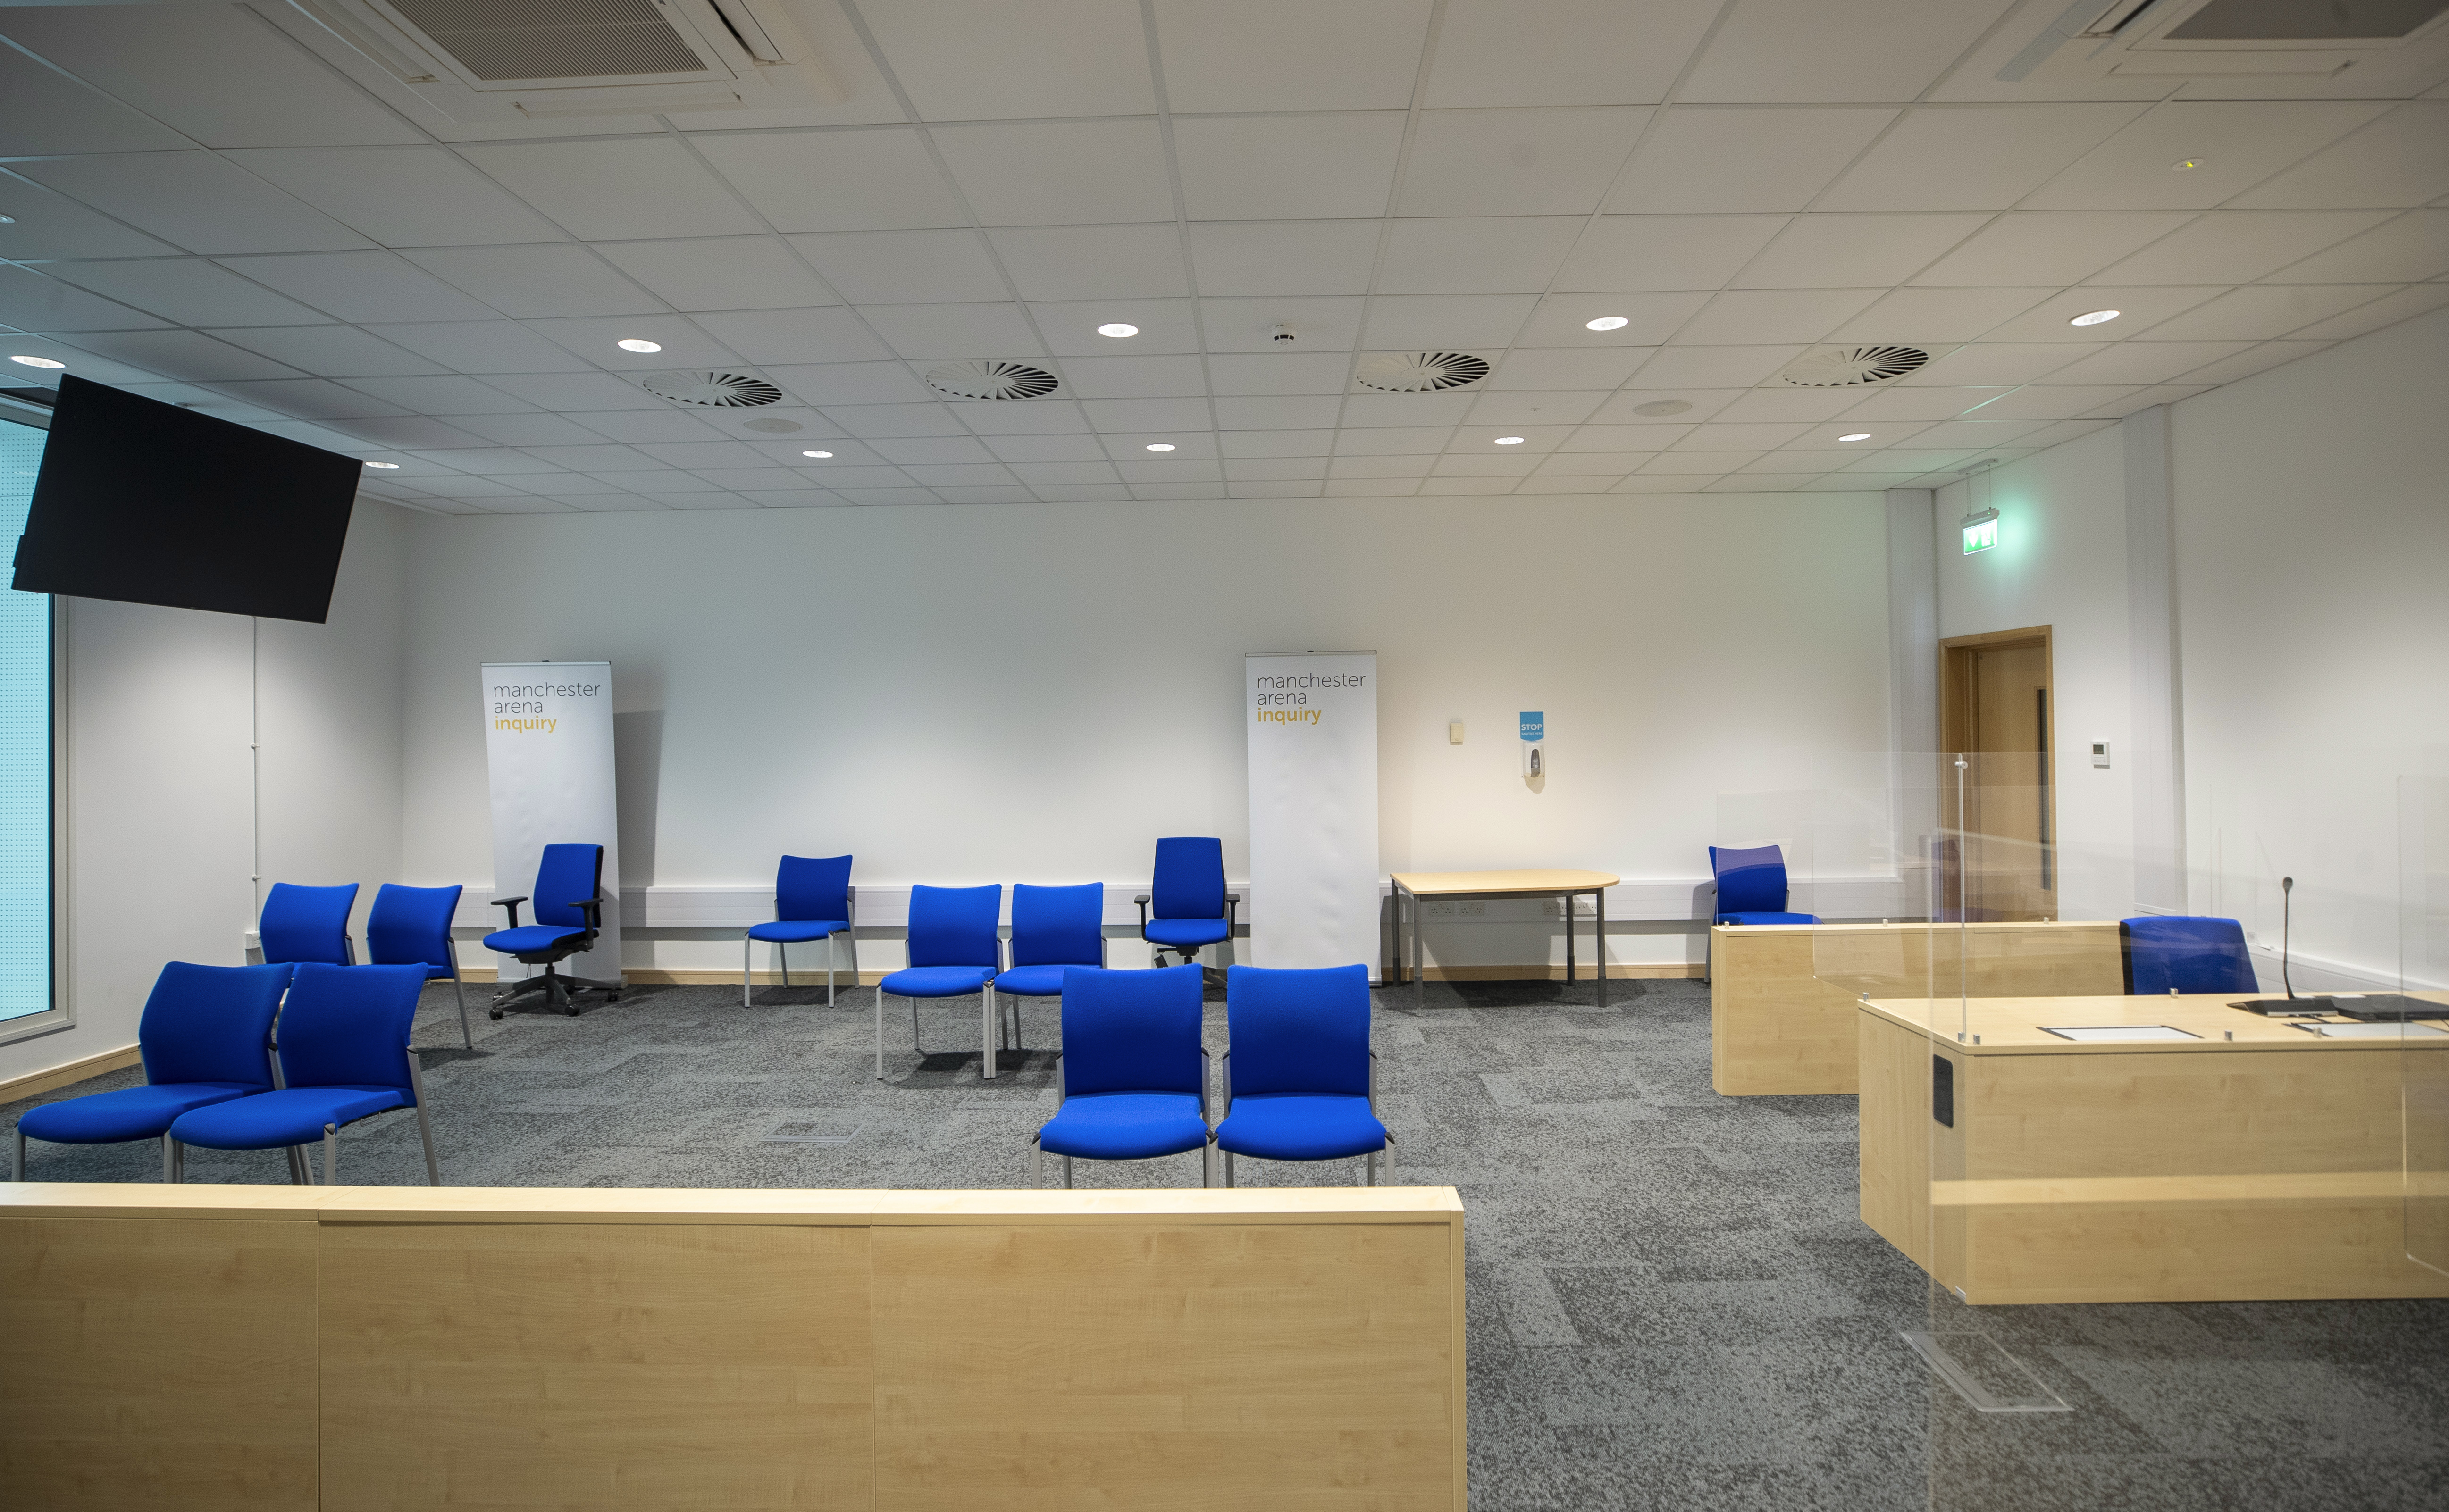 A general view inside the room where the Manchester Arena Inquiry will be held, at Manchester Magistrates Court, Manchester. The inquiry will investigate the circumstances surrounding the deaths of 22 people following the attack on May 22, 2017. (Photo by Peter Byrne/PA Images via Getty Images)